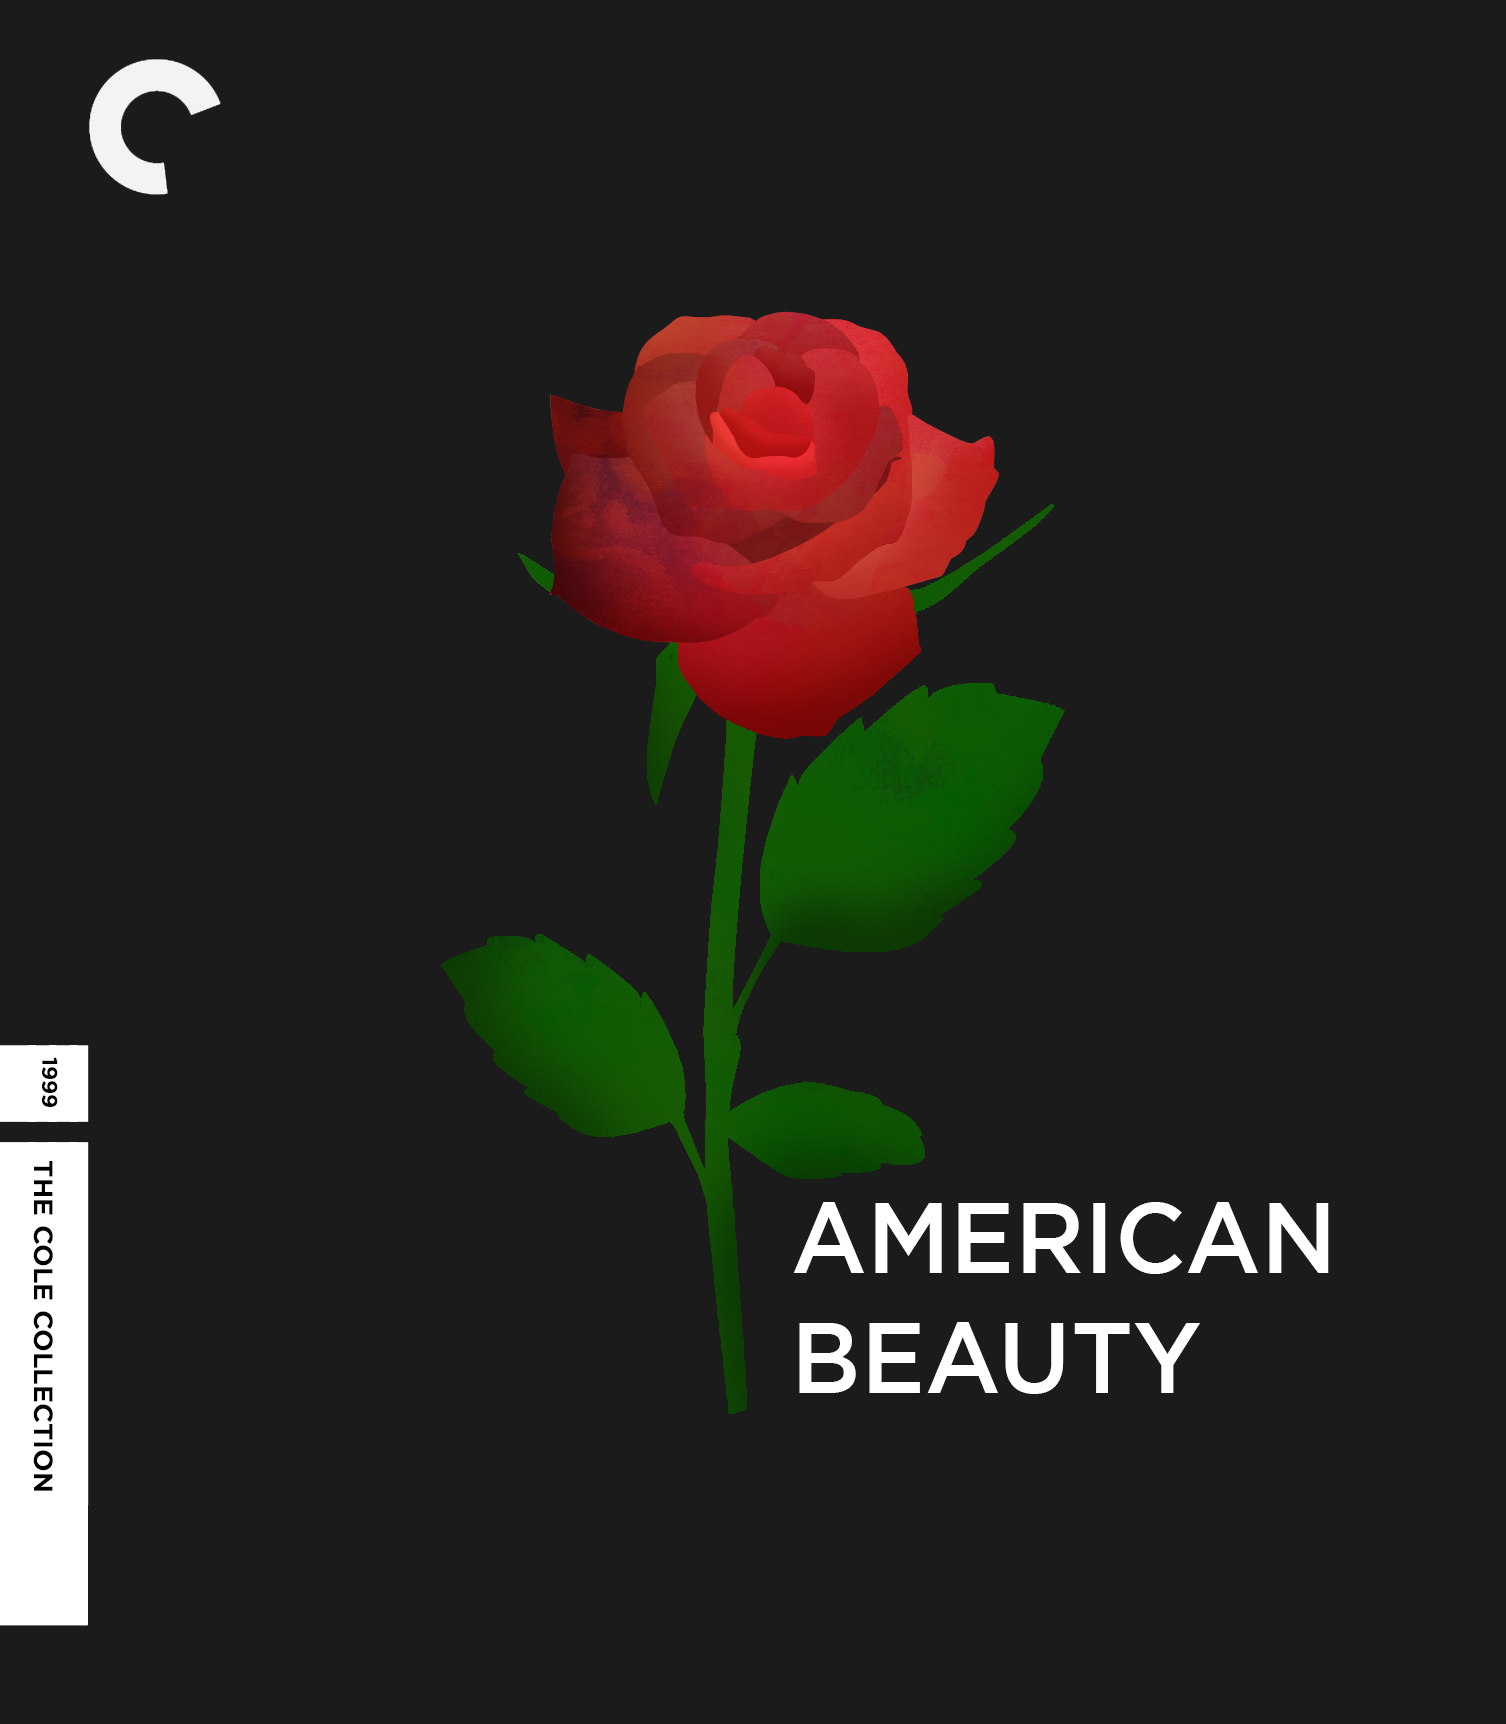 AmericanBeauty_Cover.jpg